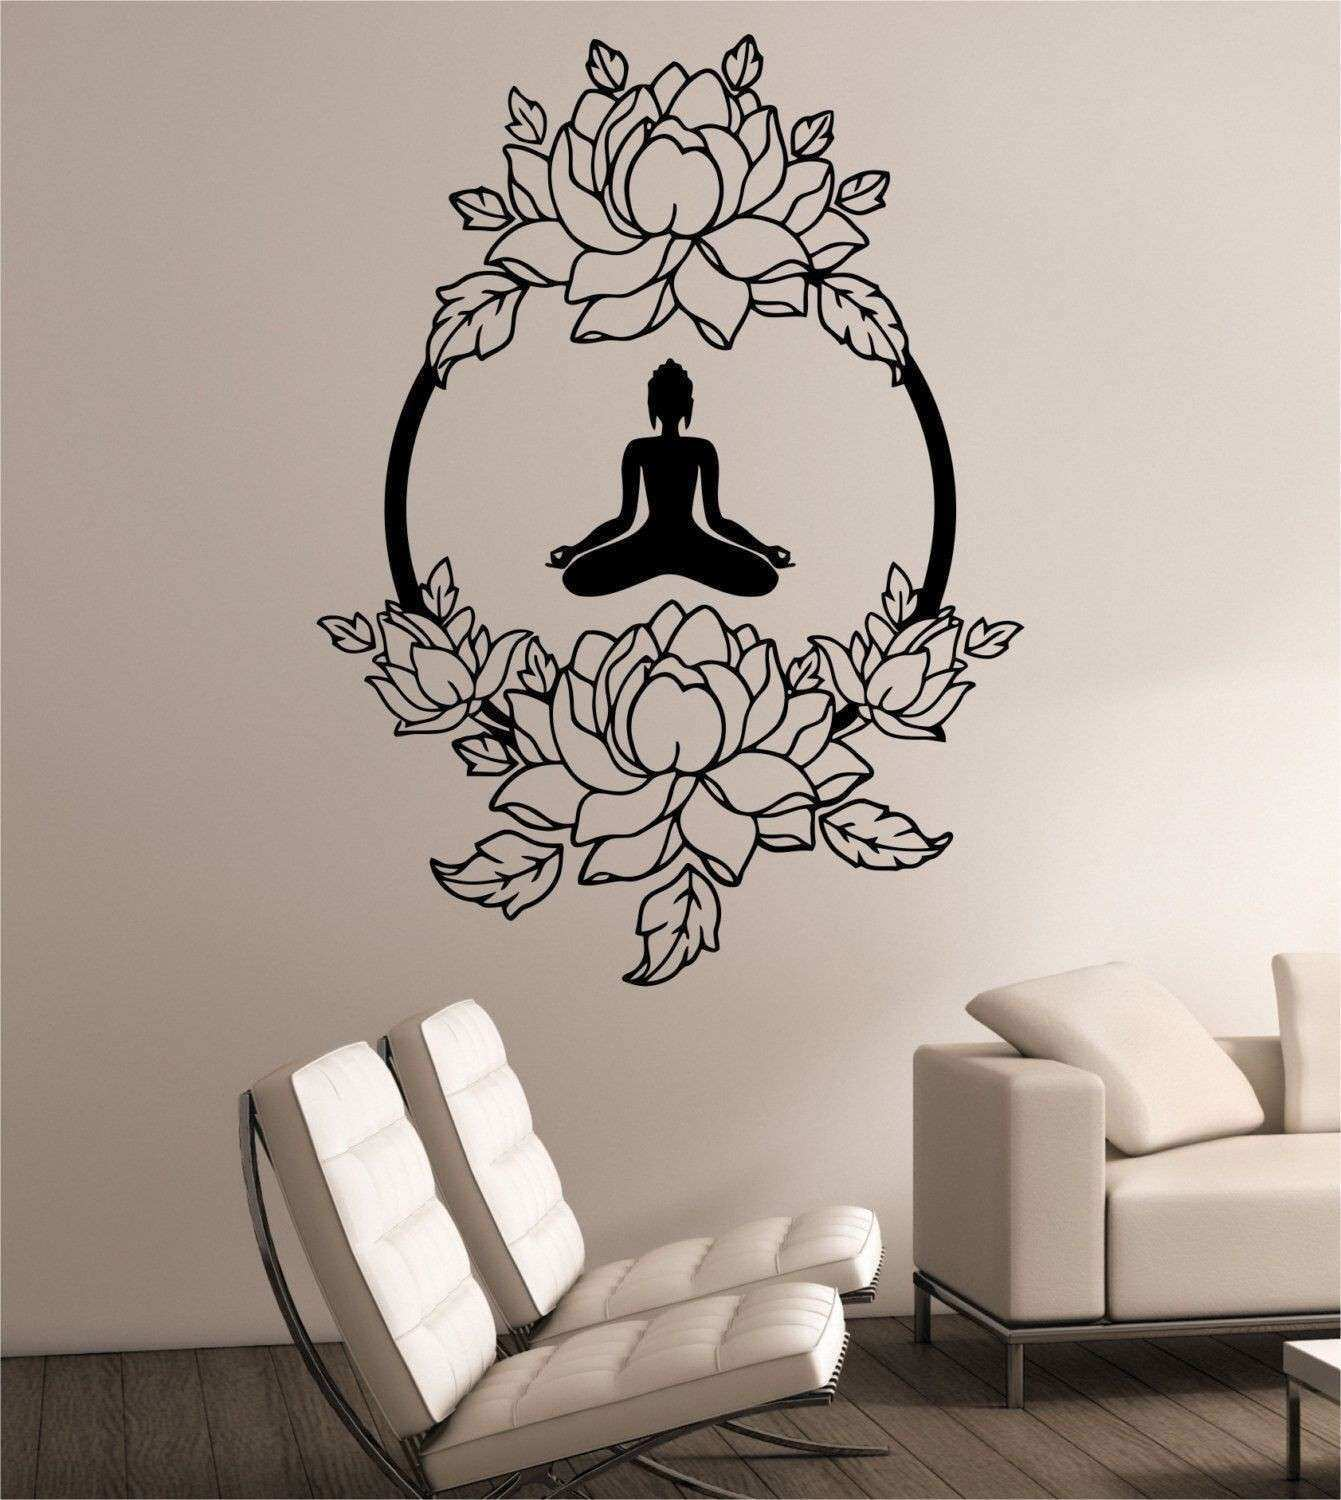 Superhero Bedroom Decor Inspirational Wall Decal Luxury 1 Kirkland